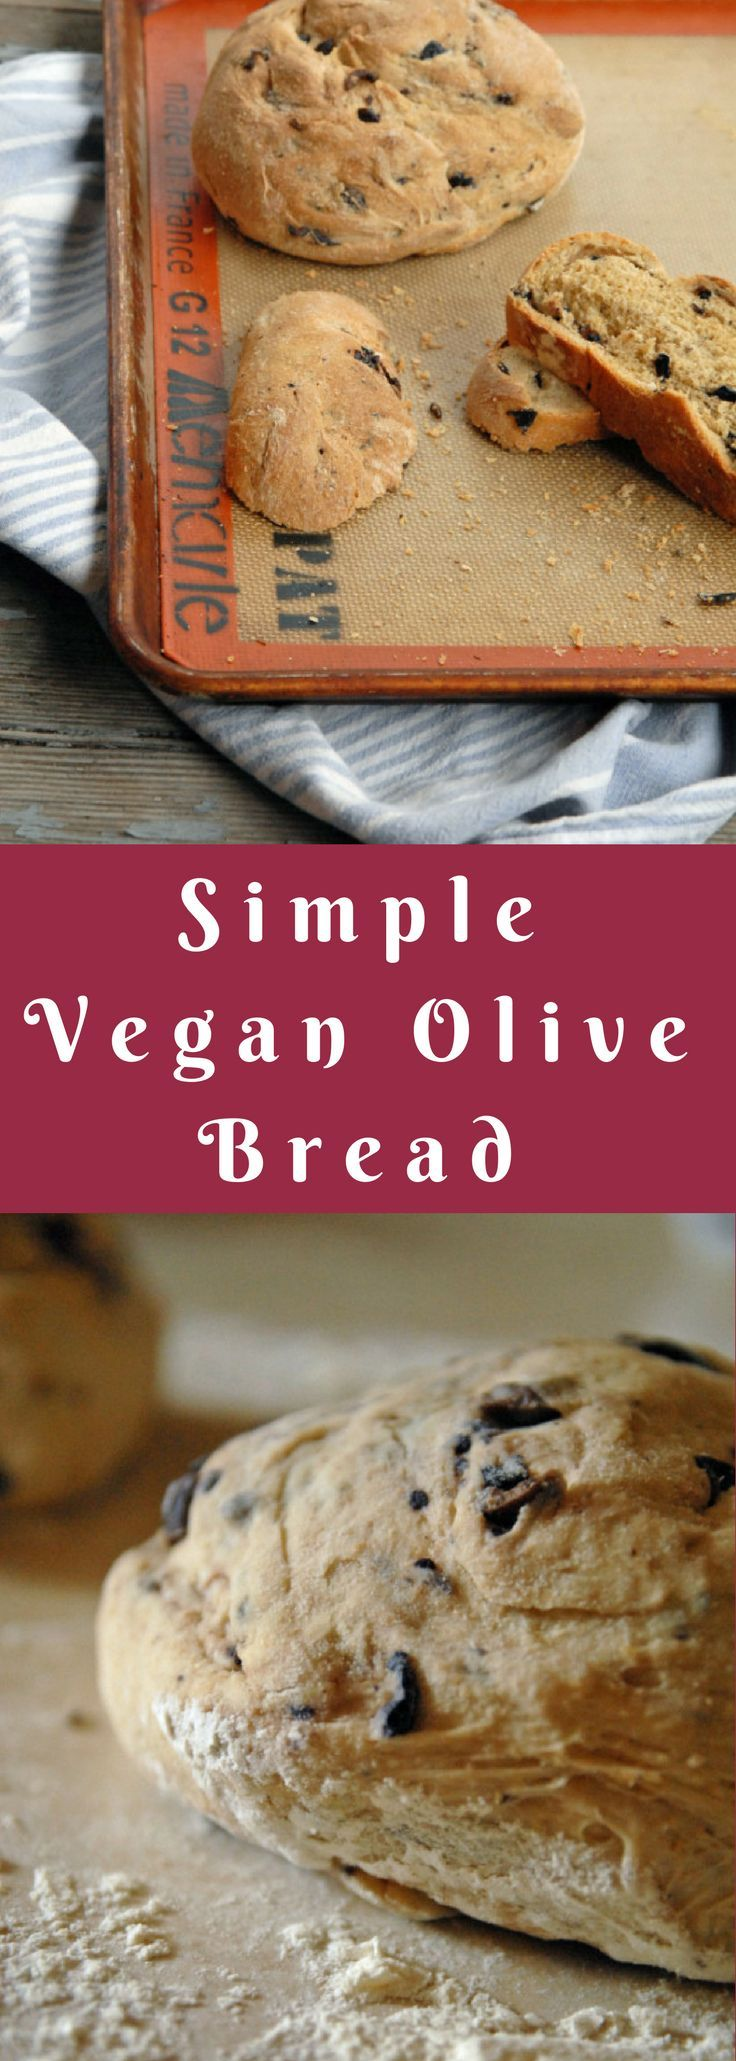 With a few hours and a little bit of kneading, this olive bread comes to life in little more than an afternoon.